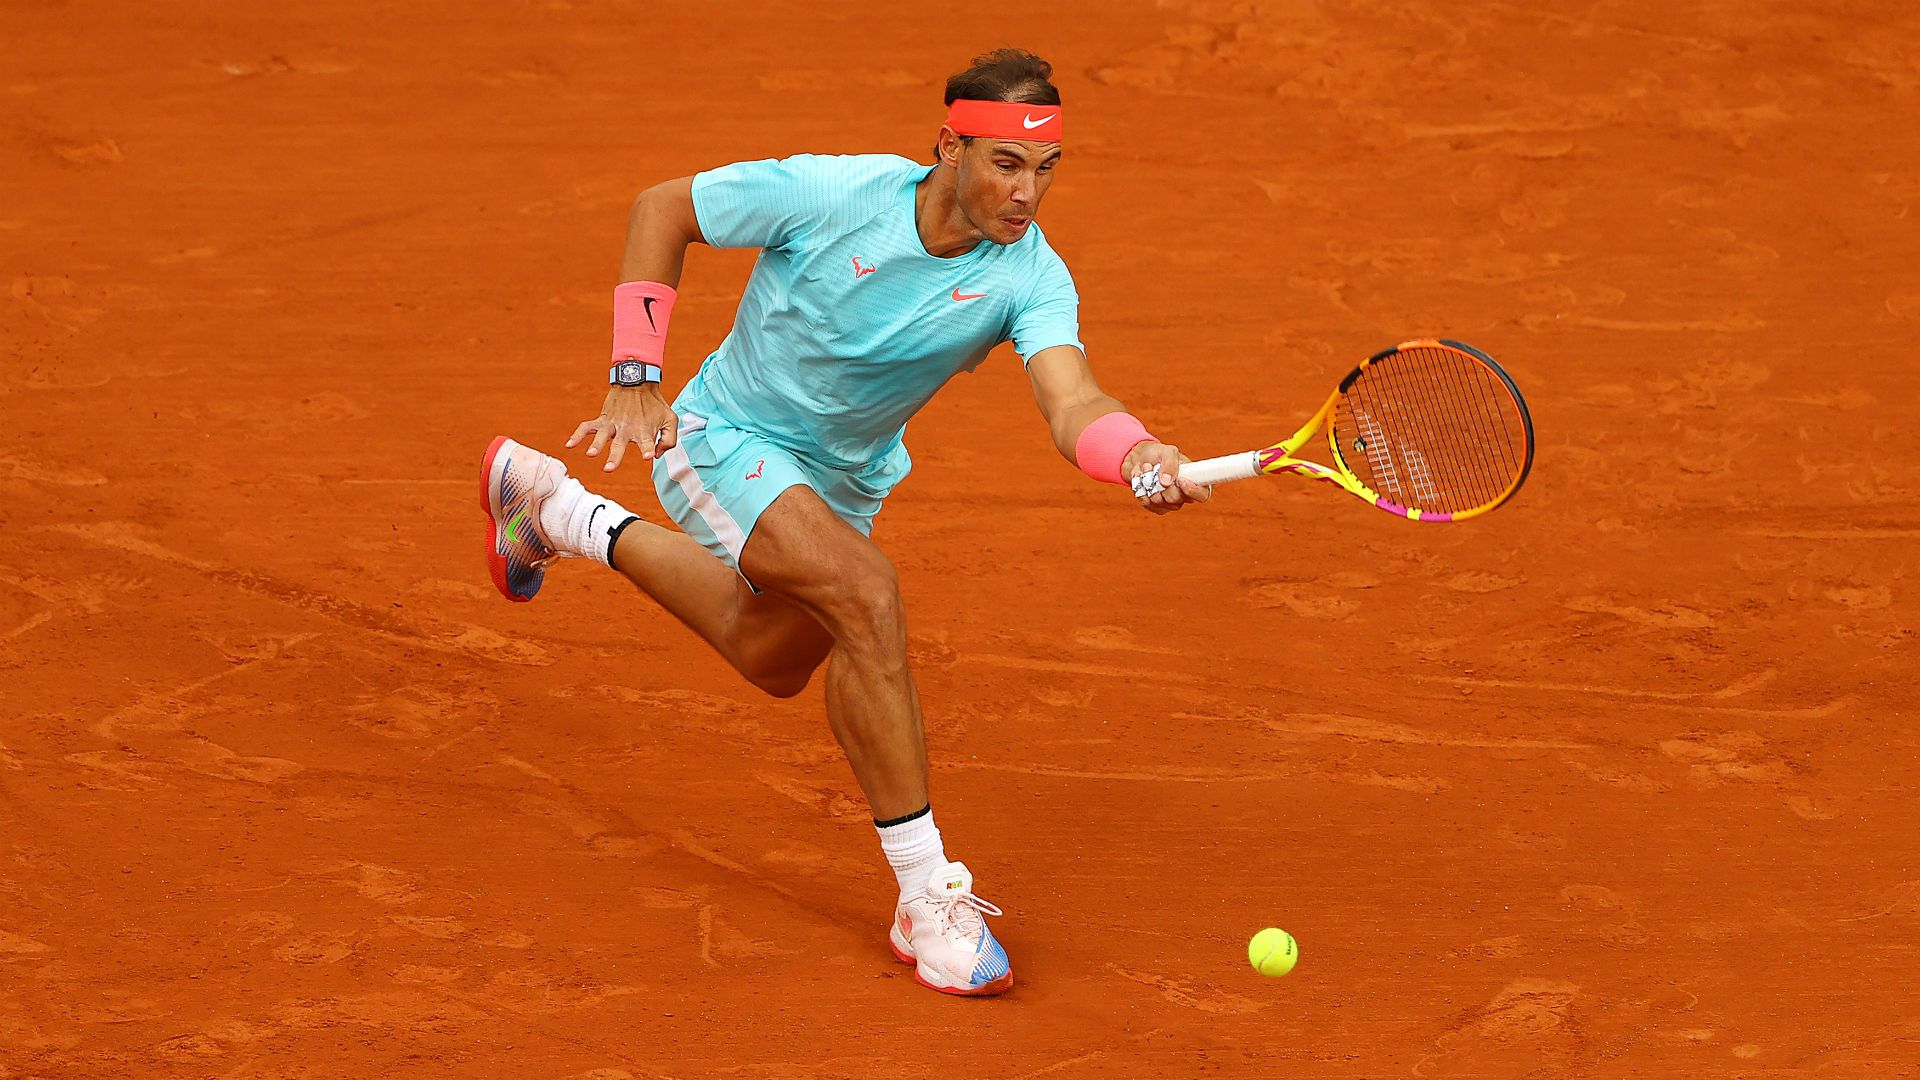 Roland Garros 2020 Preview Day 15 Nadal Vs Djokovic Is The Gift That Keeps On Giving Tennis Connected